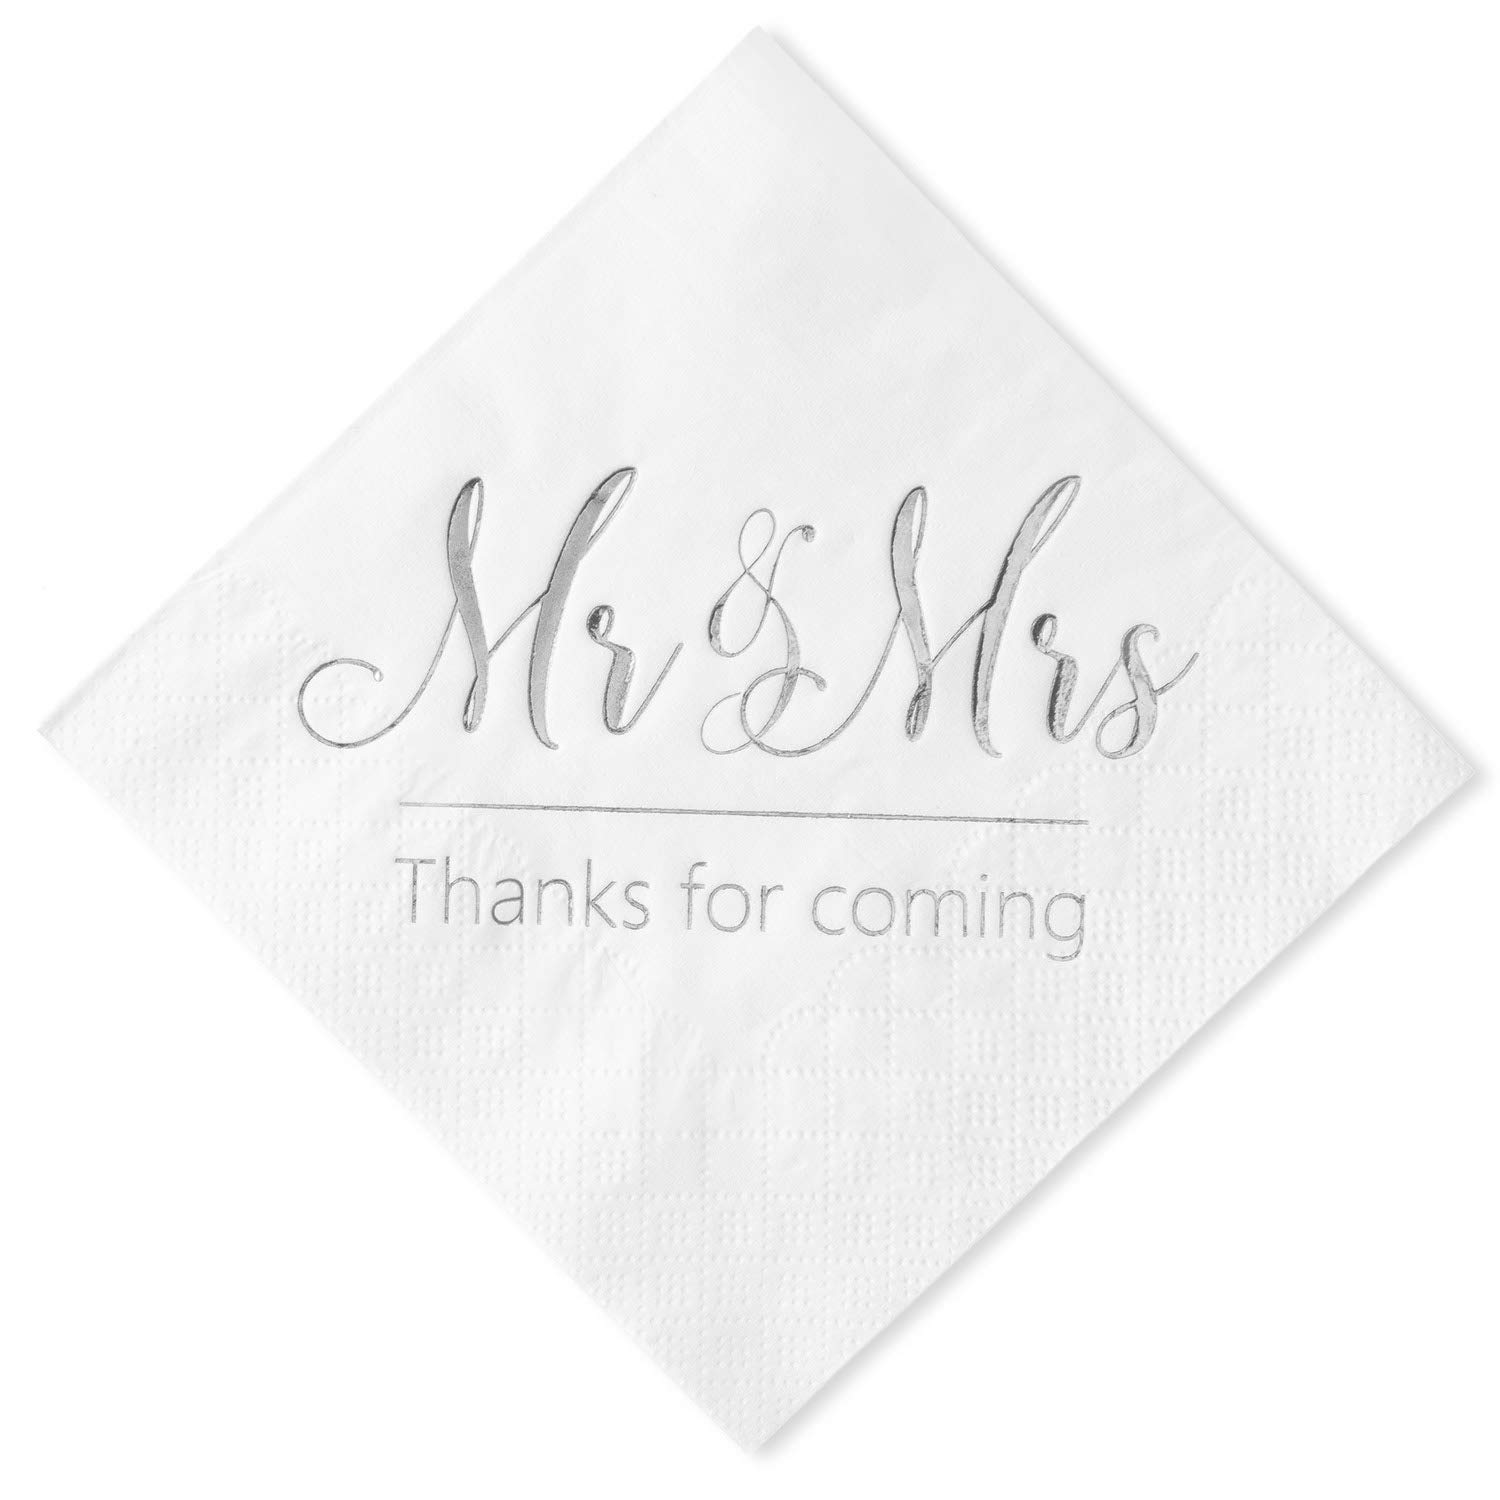 Crisky Wedding Napkins Mr Mrs Silver Cocktail Beverage Dessert Napkins for Wedding Tabel Decoration Engagement Party Supplies, 100 Pcs, 3-Ply by Crisky